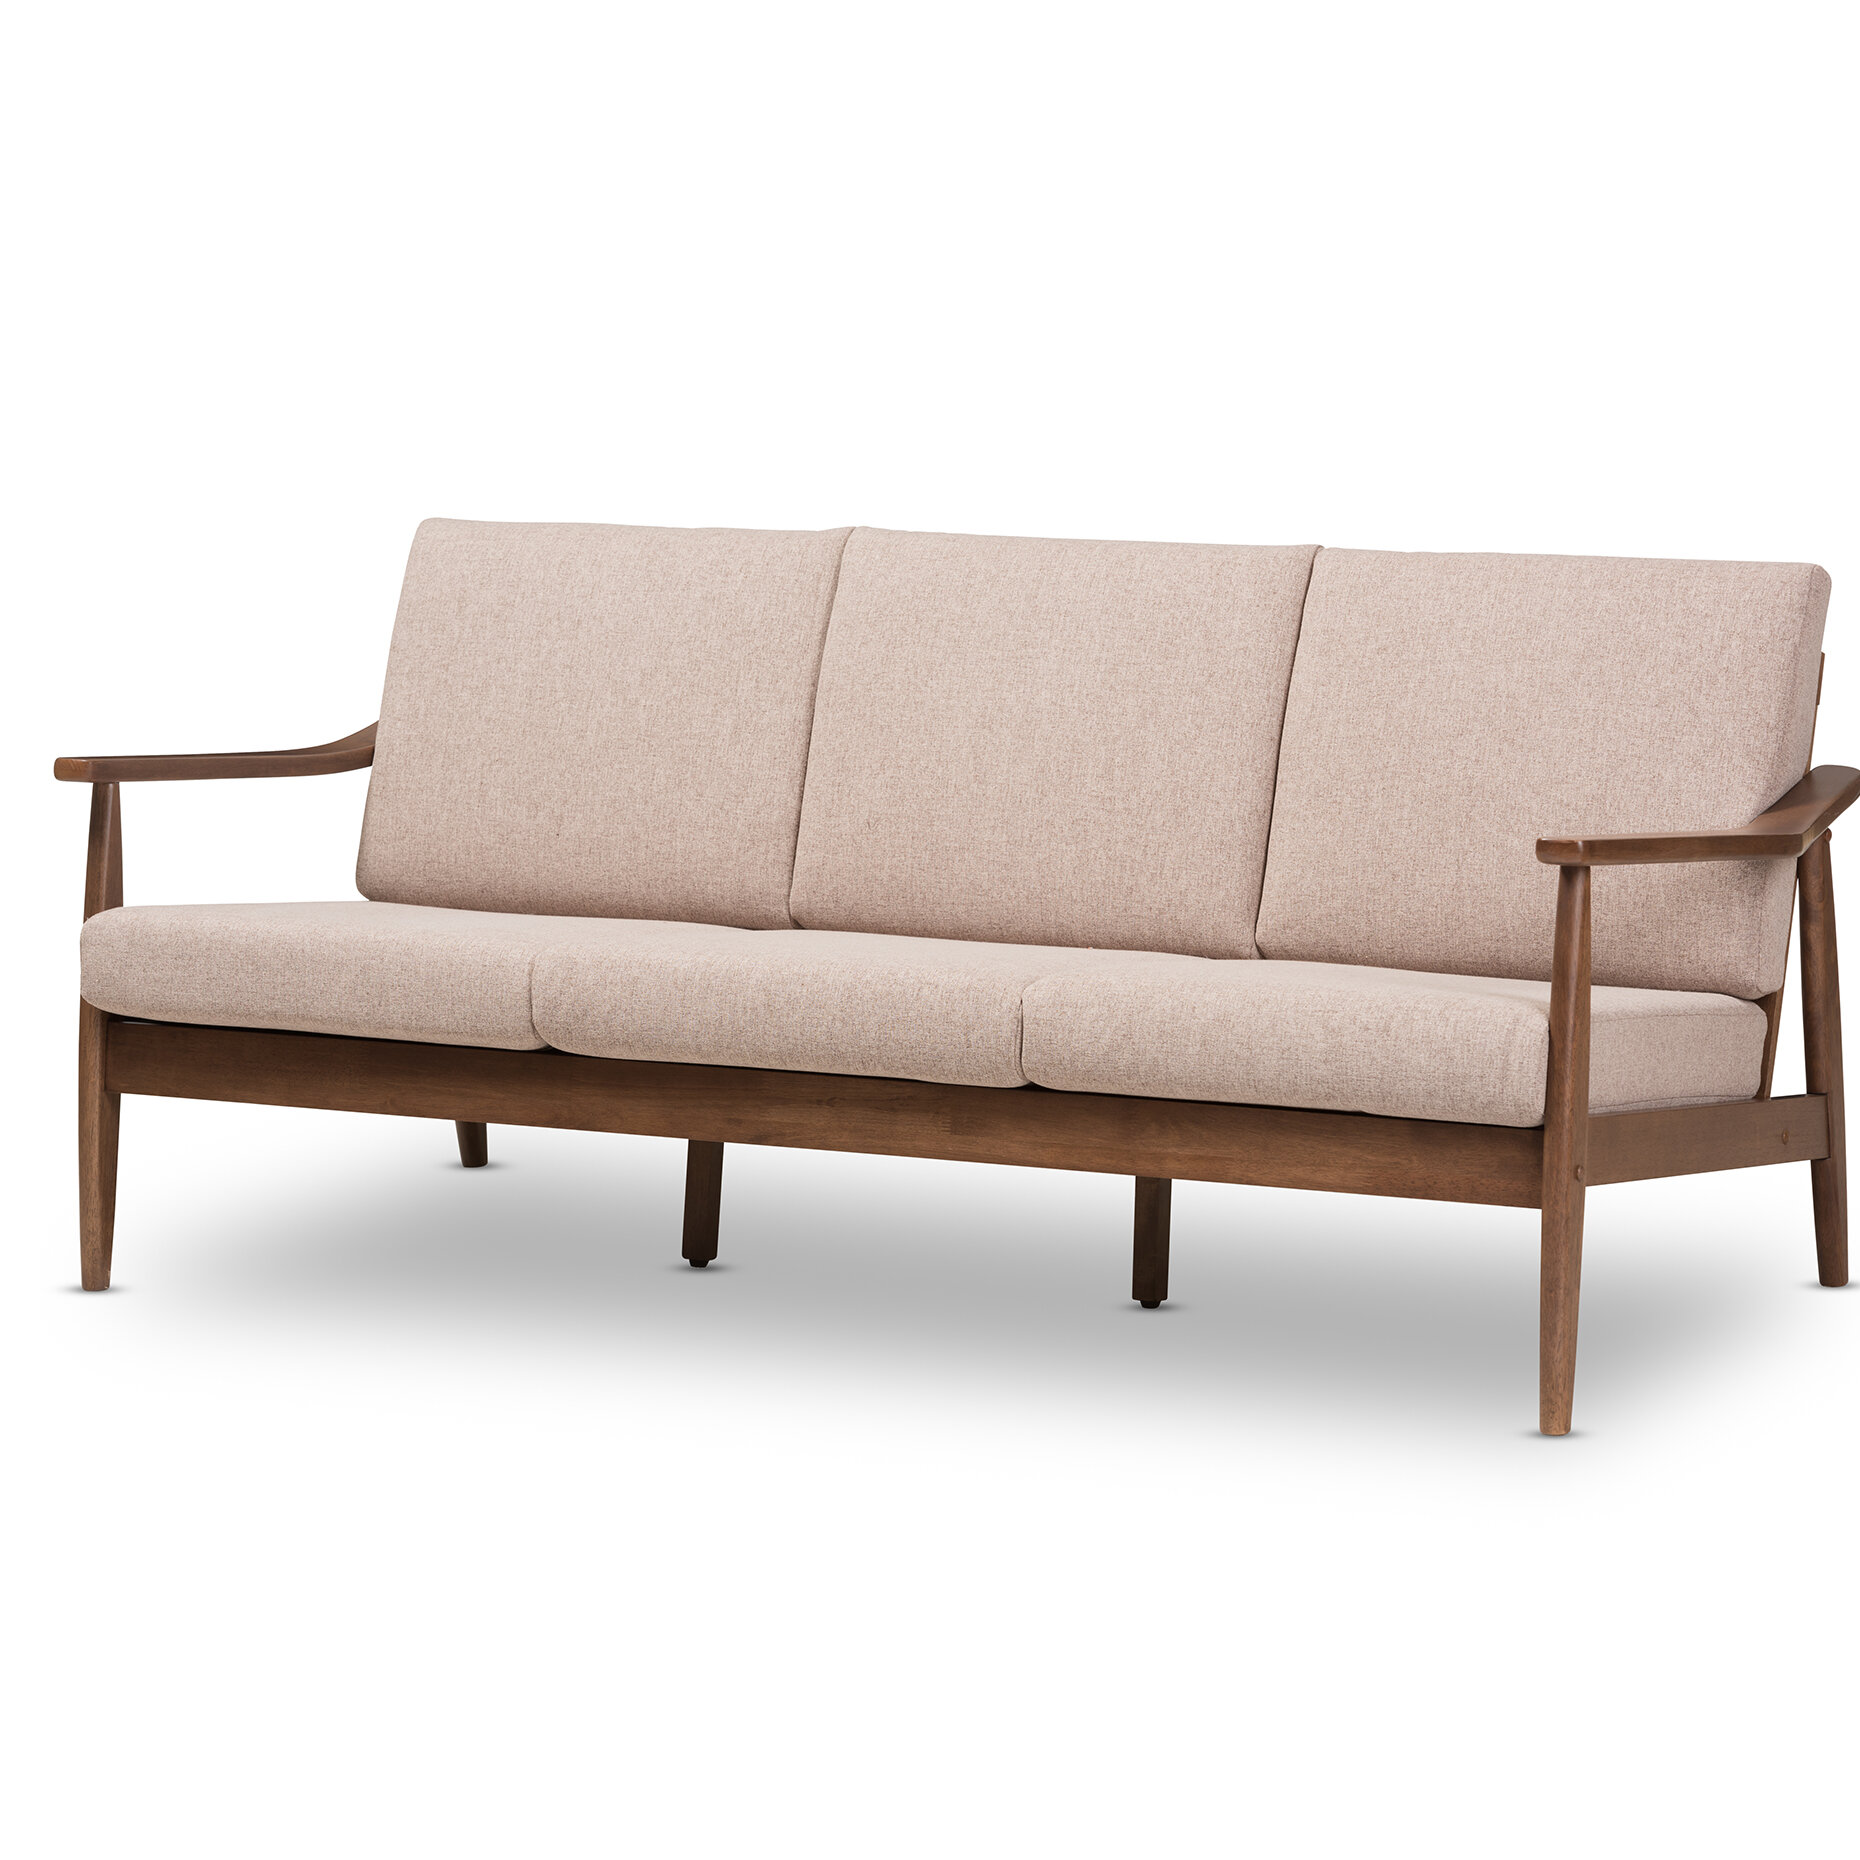 Union Rustic Kellner Mid Century Modern Sofa Reviews Wayfair